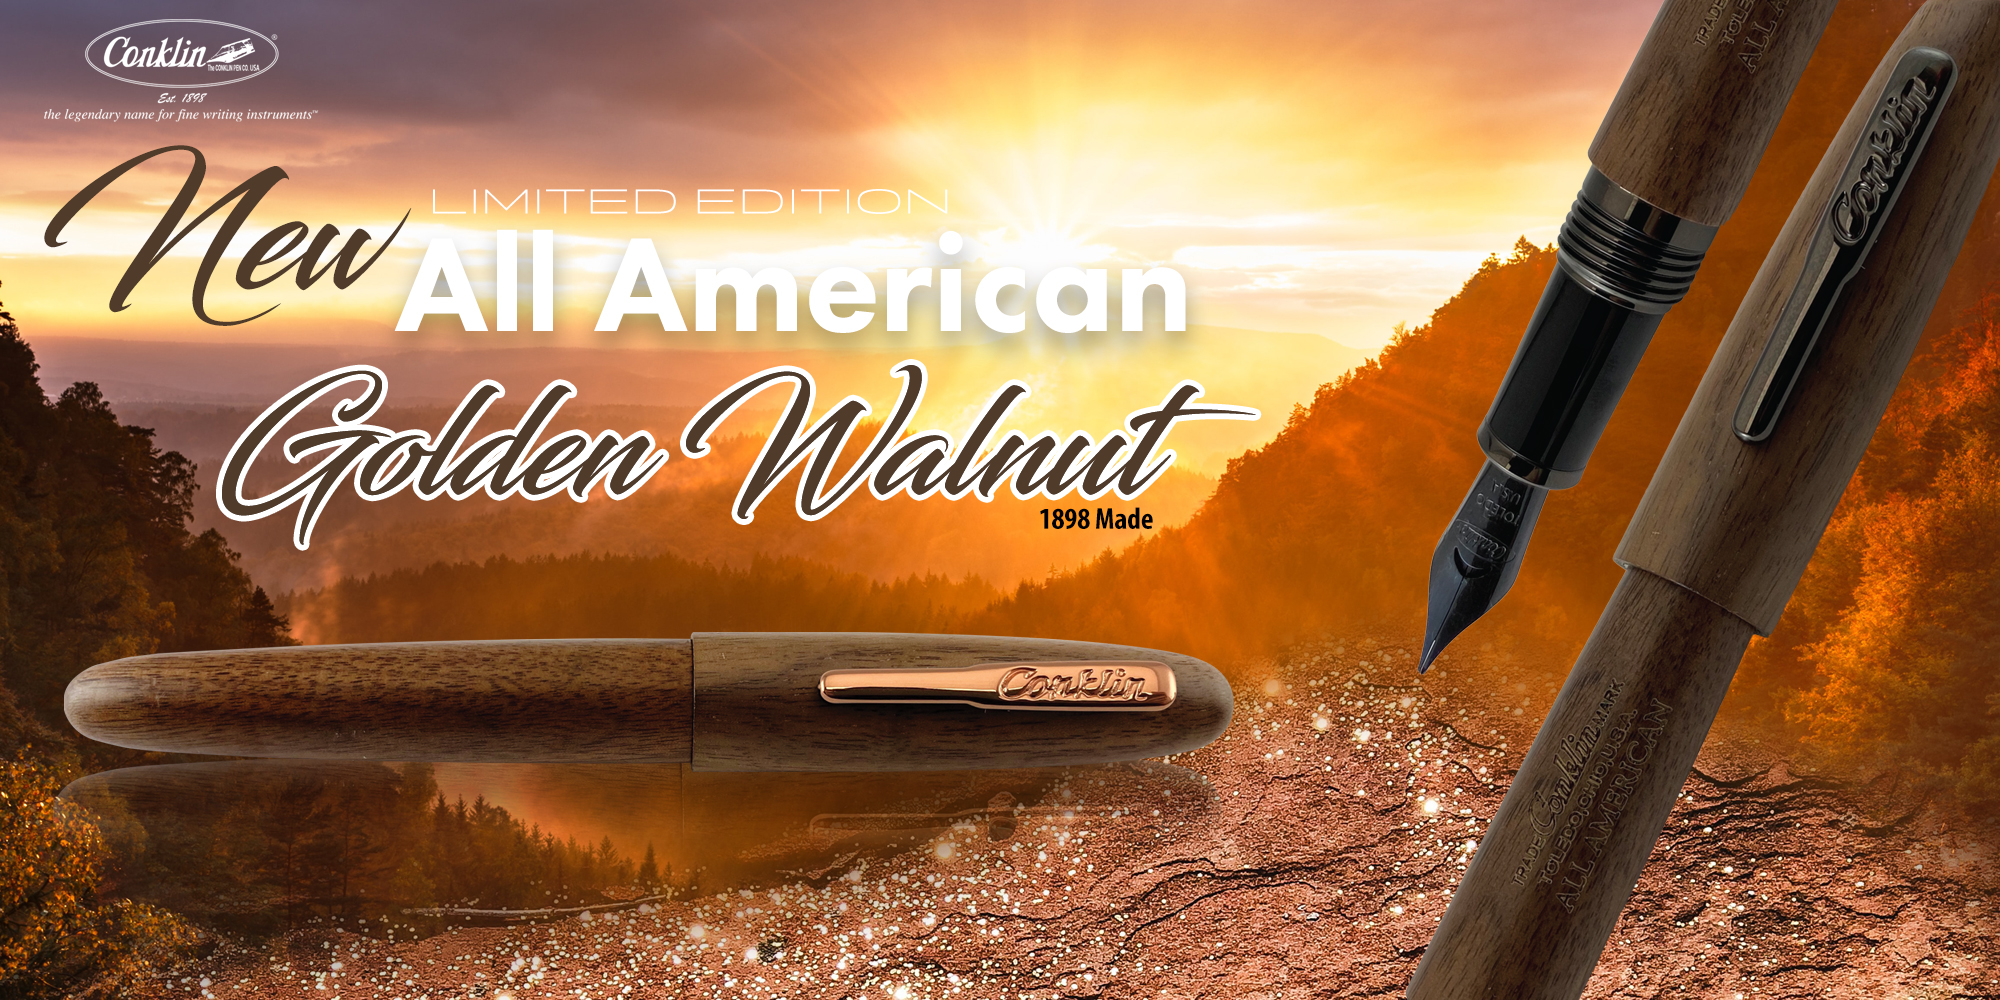 golden-walnut-banner-new.jpg